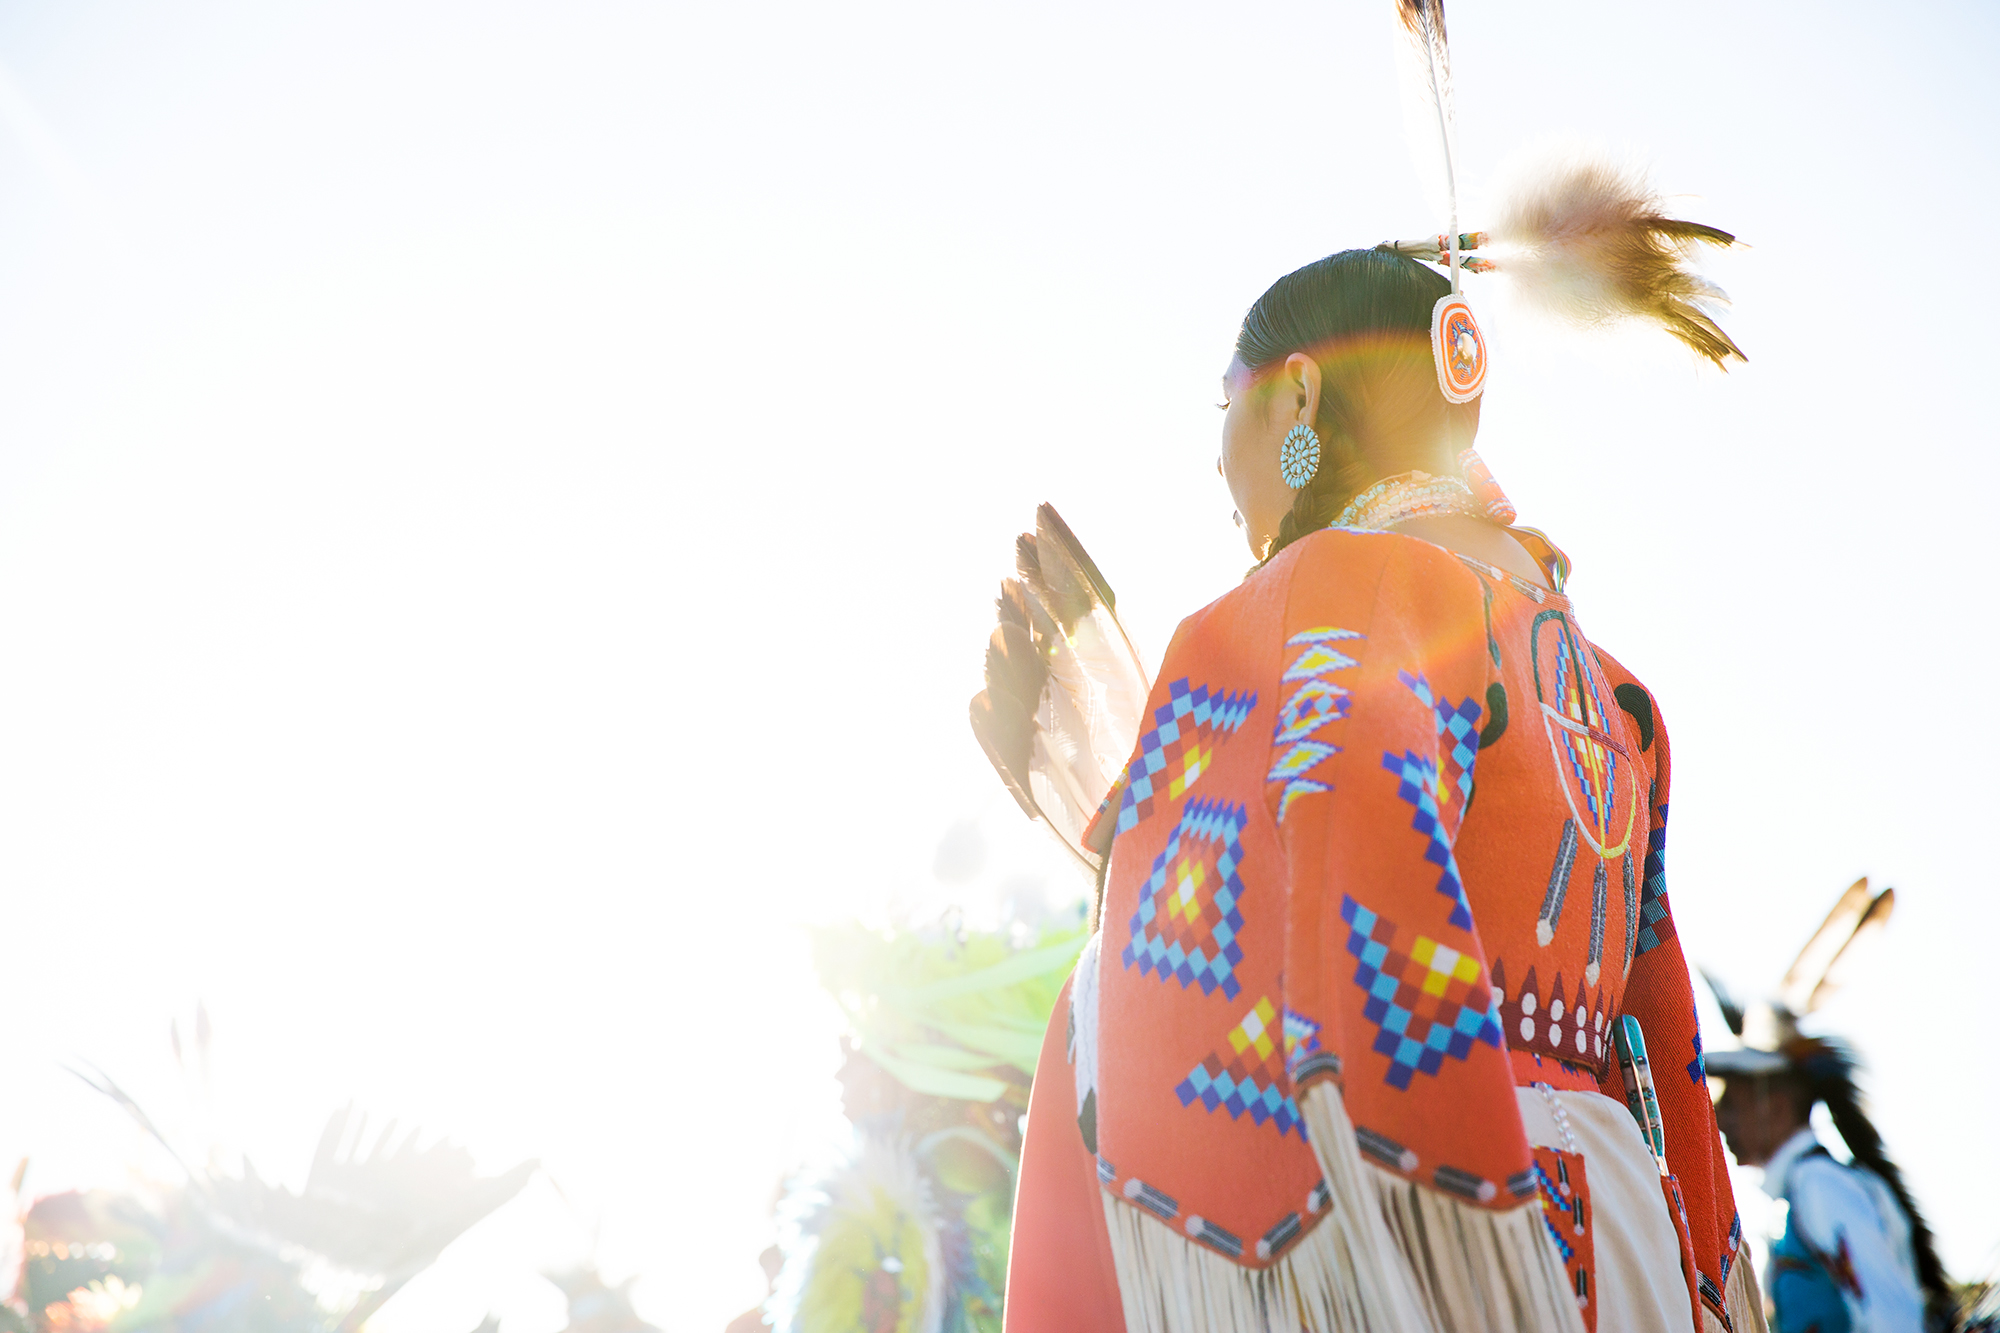 Dancers from tribes throughout the U.S. and Canada enter the arena during North American Indian Days in Browning, Montana.